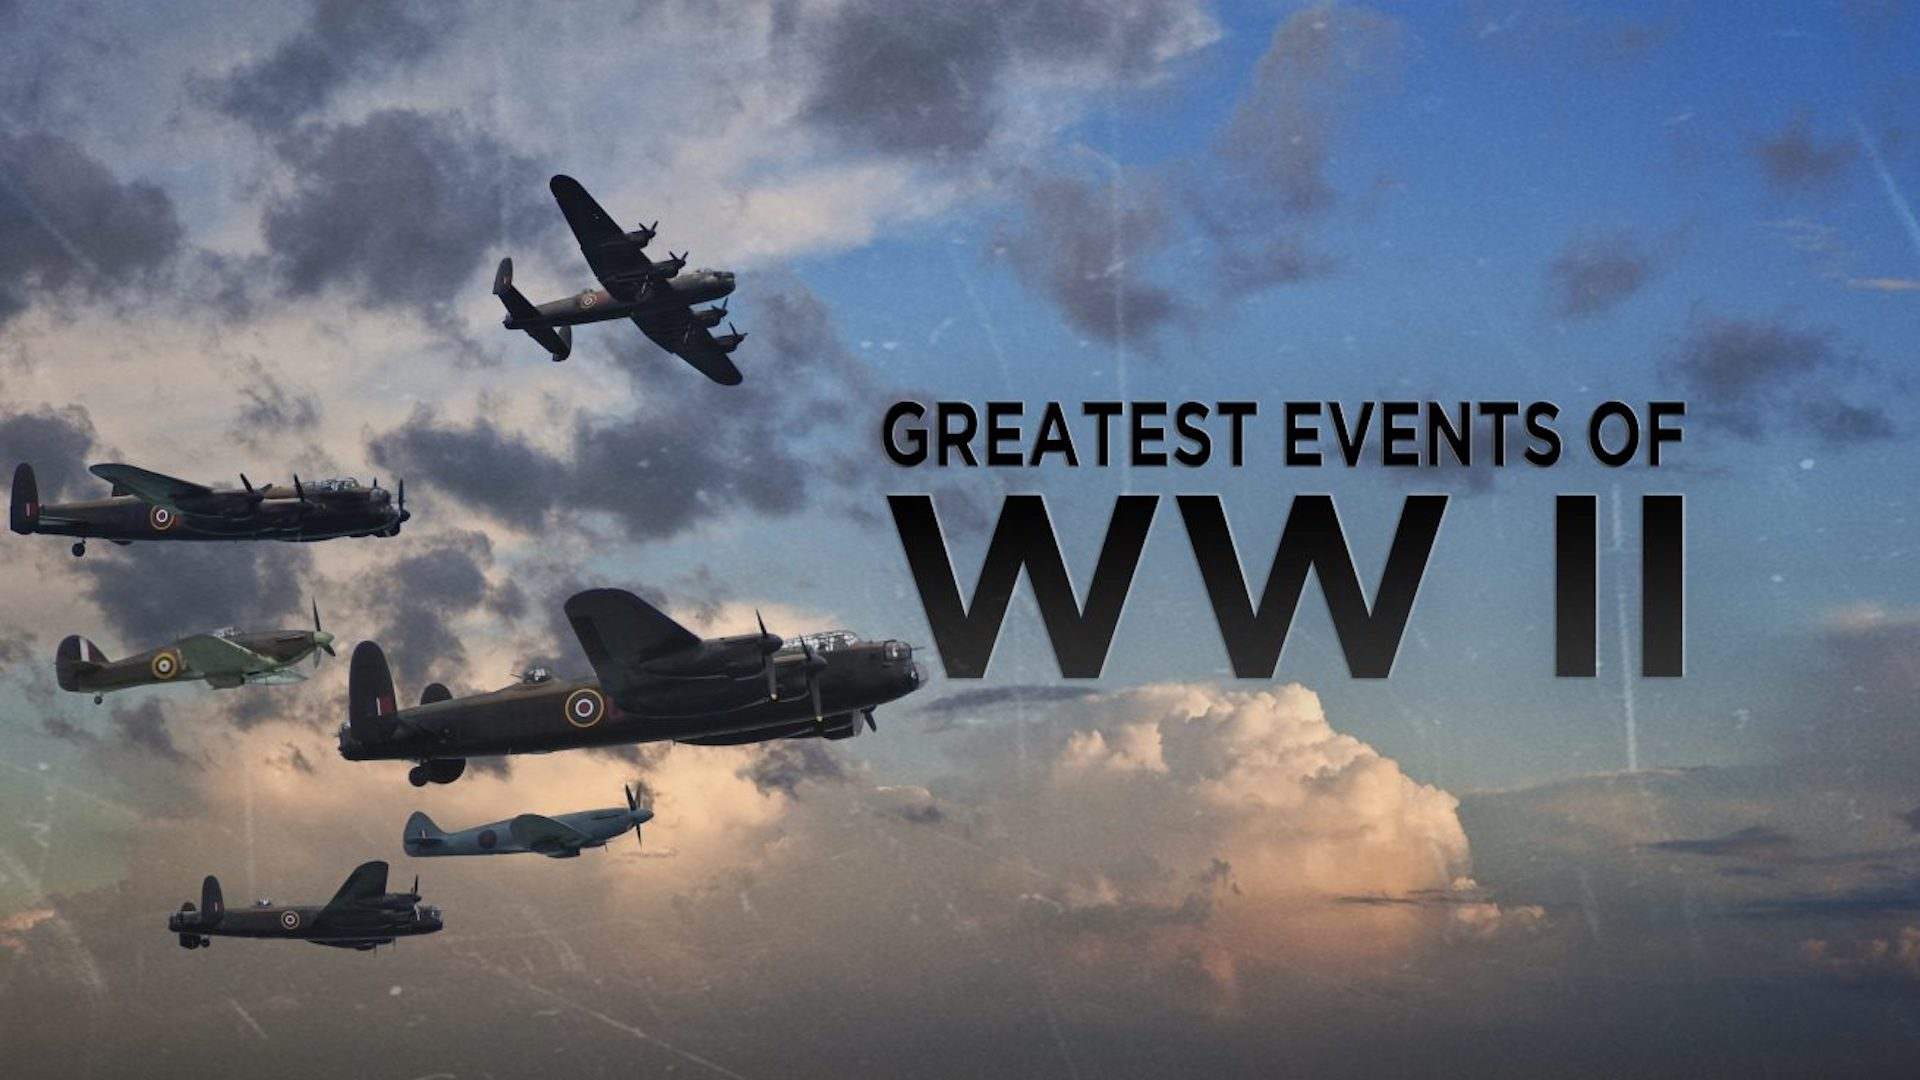 greatest events of world war ii in hd colour s01e01 720p web x264-stout